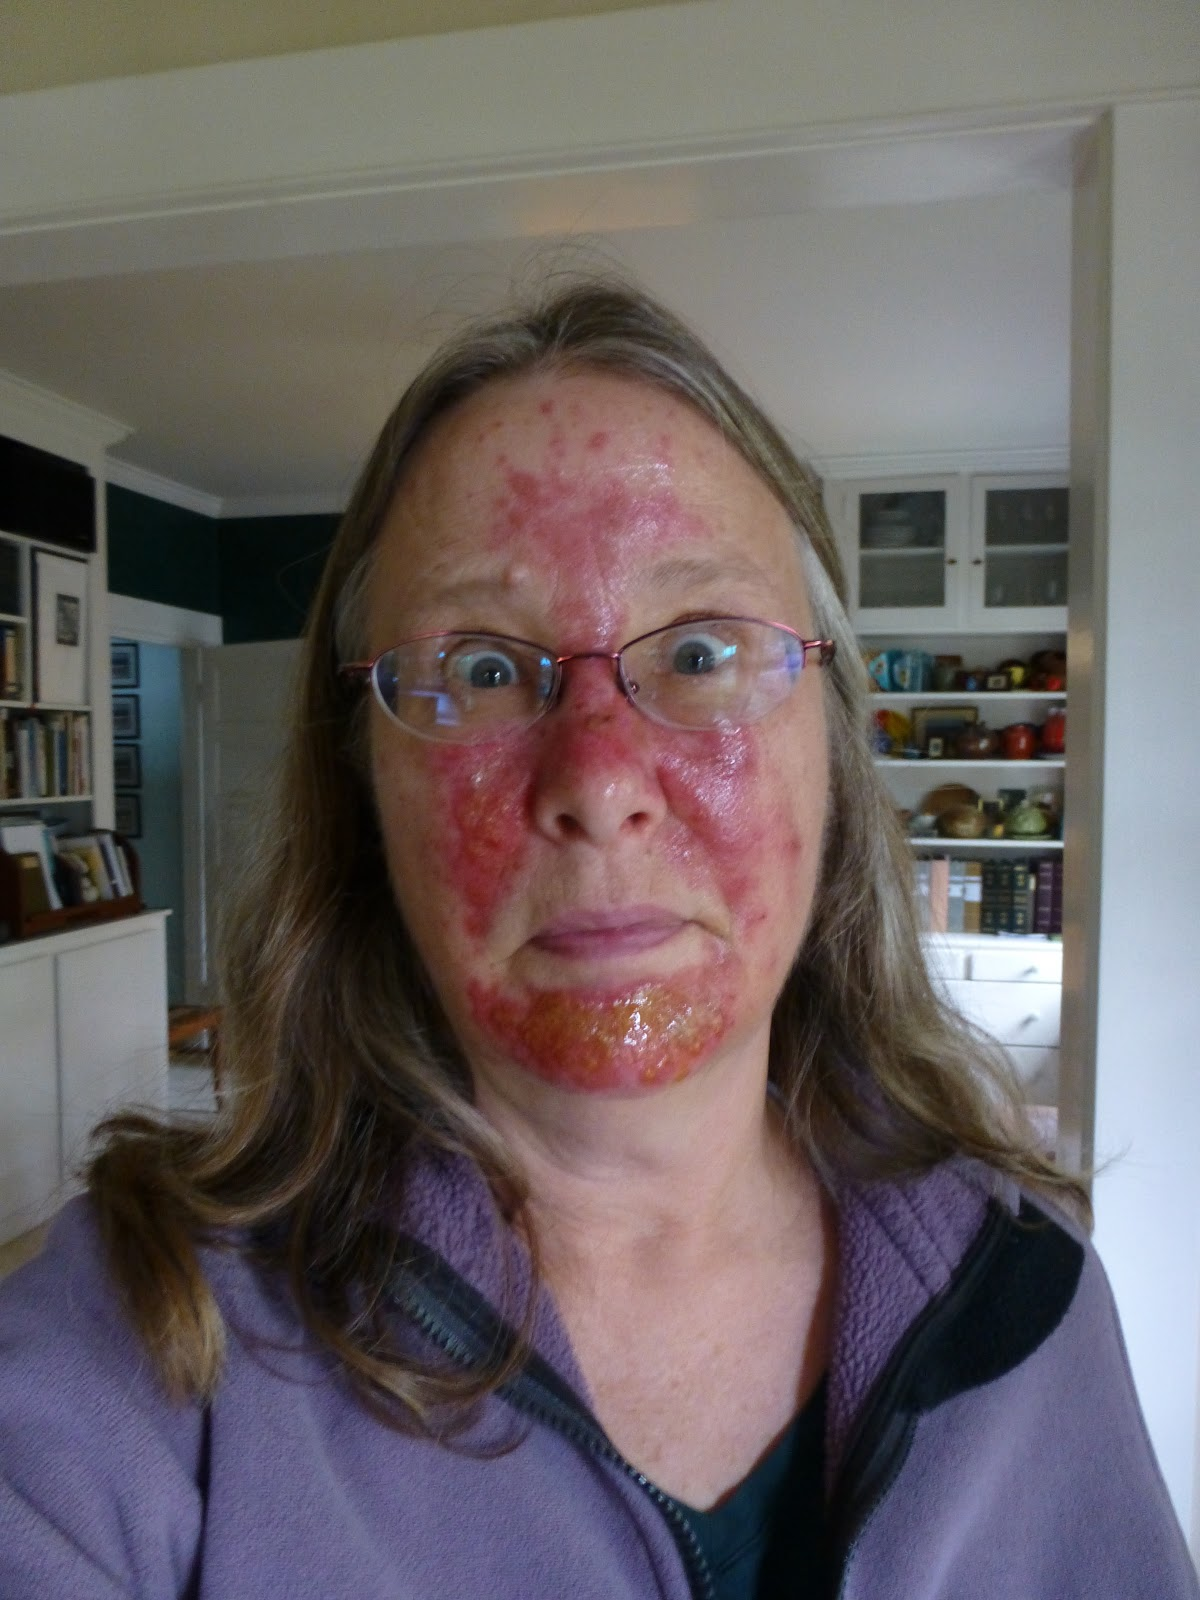 cold sores on chin #10